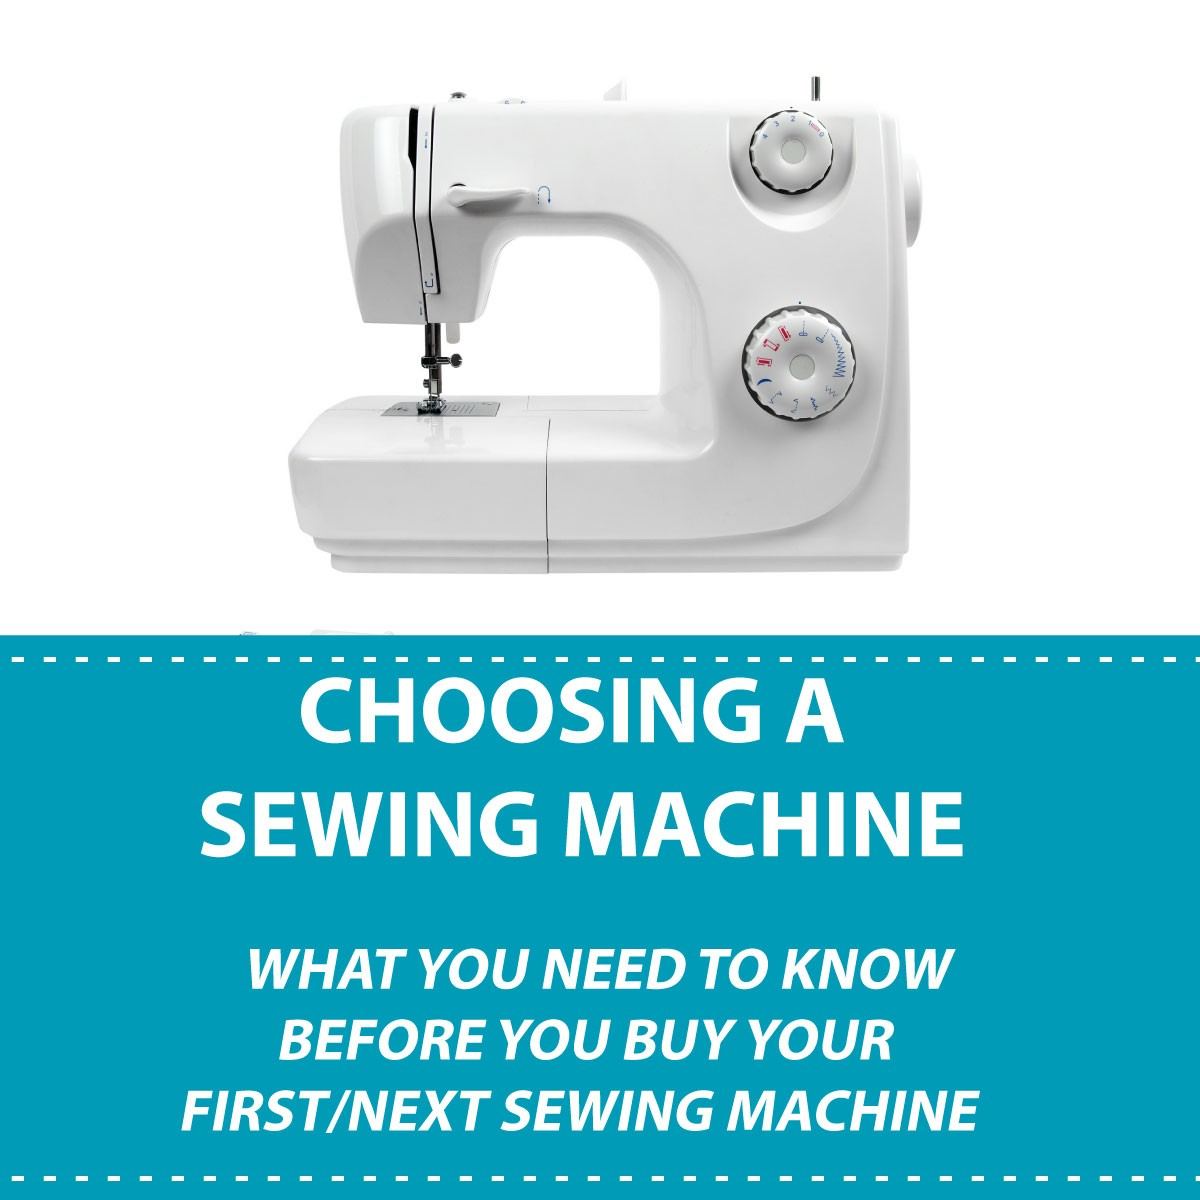 How to choose a sewing machine for home use